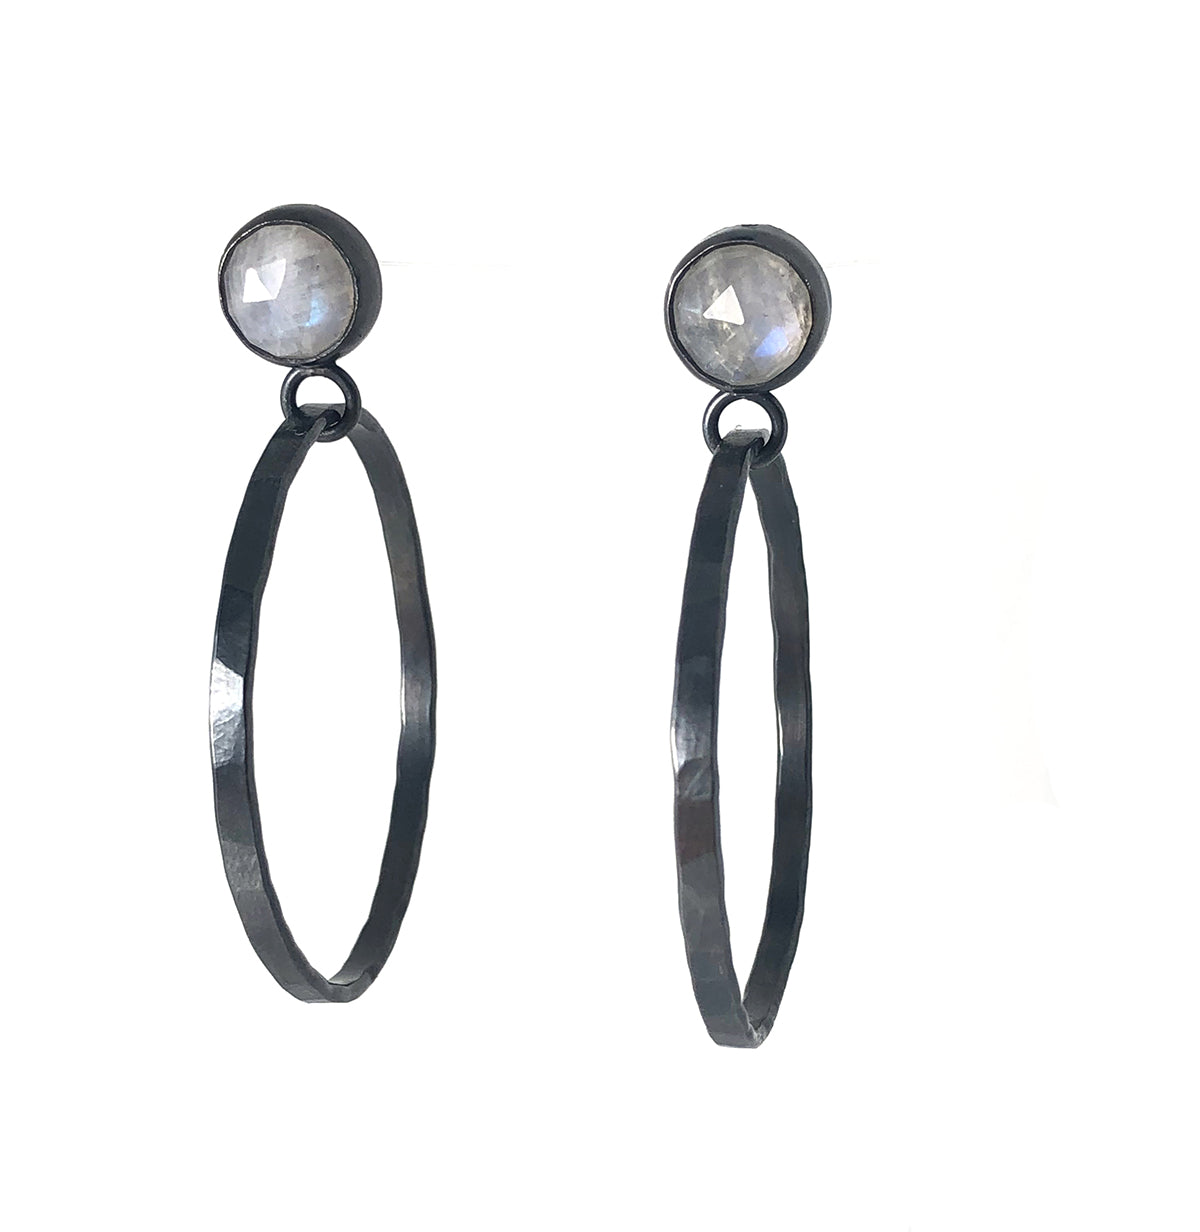 Rainbow Moonstone Hoop Earrings set in oxidized sterling silver